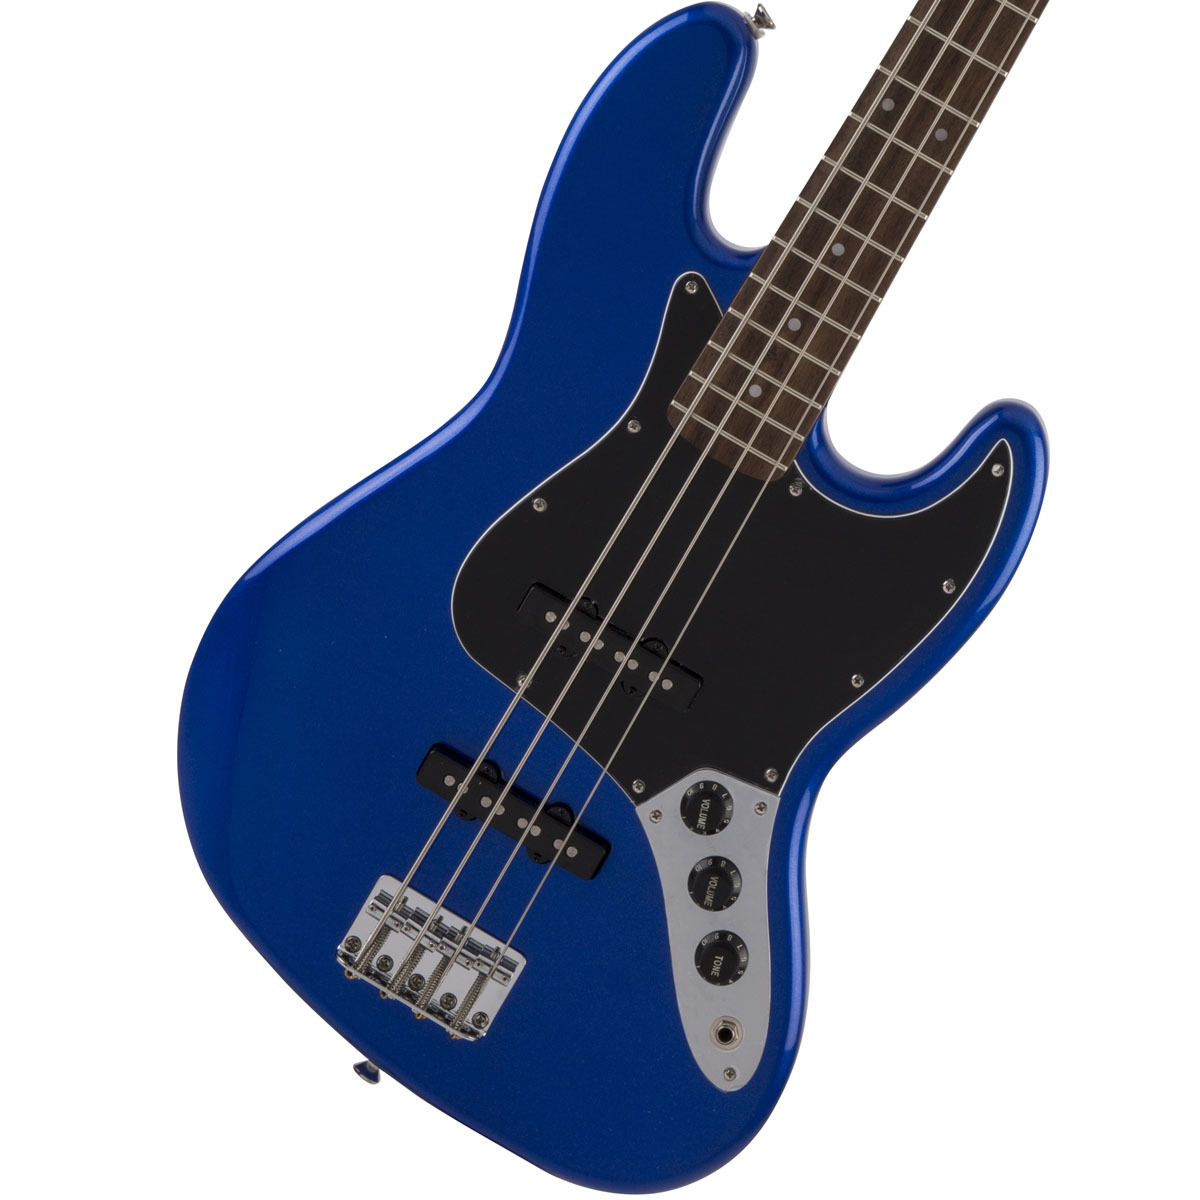 Squier by Fender / Affinity Jazz Bass Imperial Blue Indian Laurel スクワイヤー 【B級アウトレット特価】